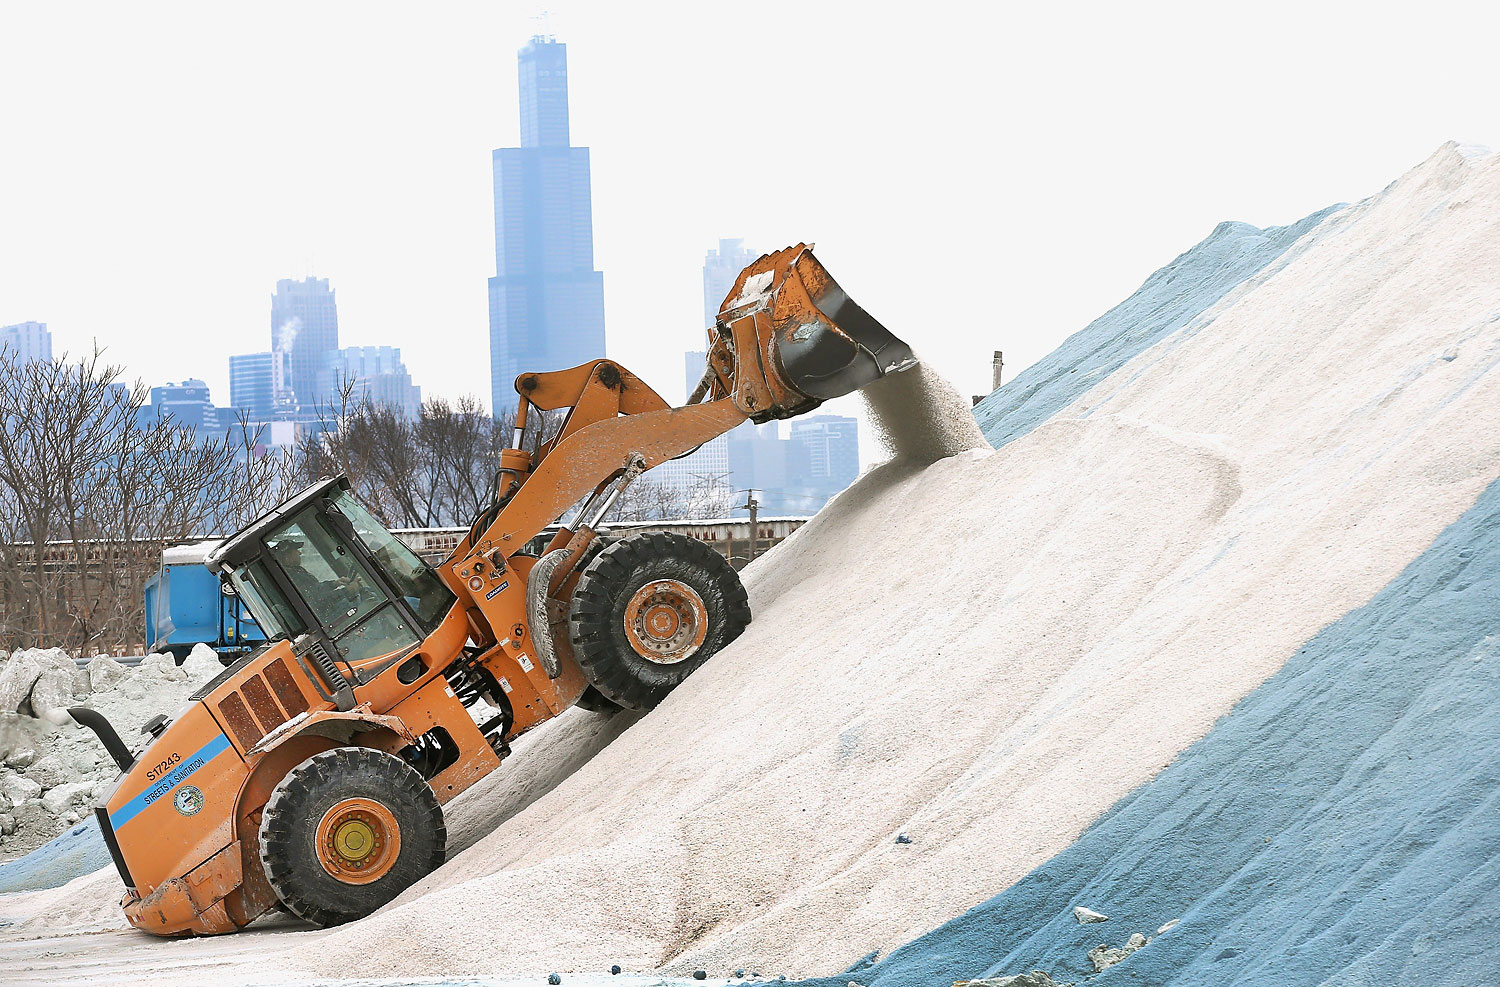 A Streets and Sanitation worker grooms a pile of road salt as the city makes preparations for another winter storm on Feb. 4, 2014 in Chicago.